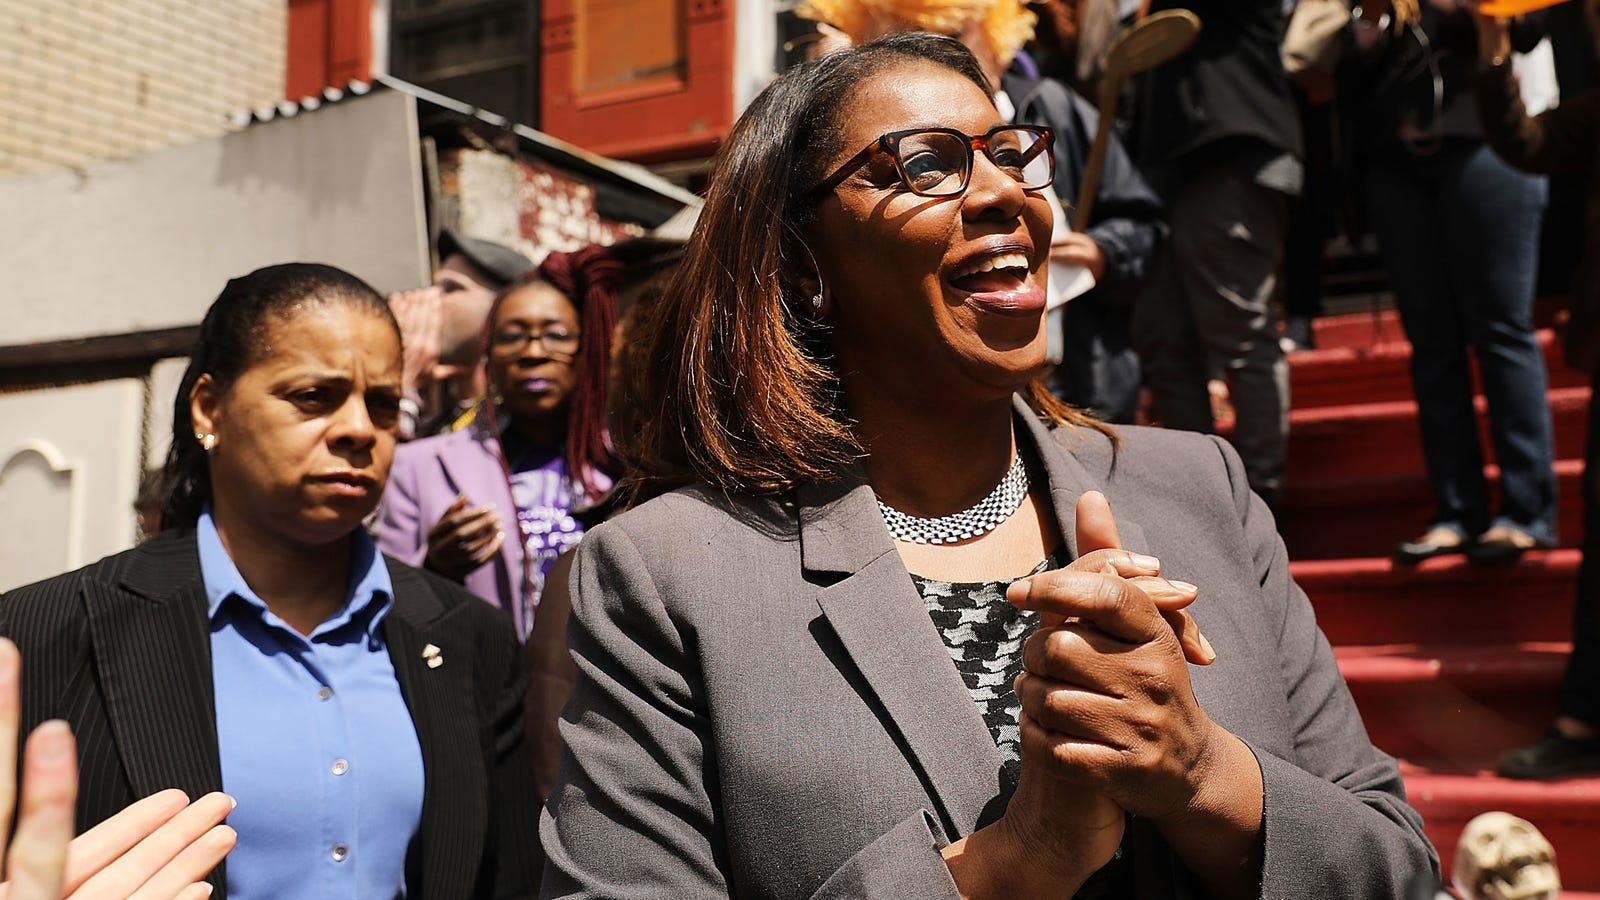 With Primary Win, Letitia James Inches Closer to Being 1st Black Woman to Win Statewide Office in New York